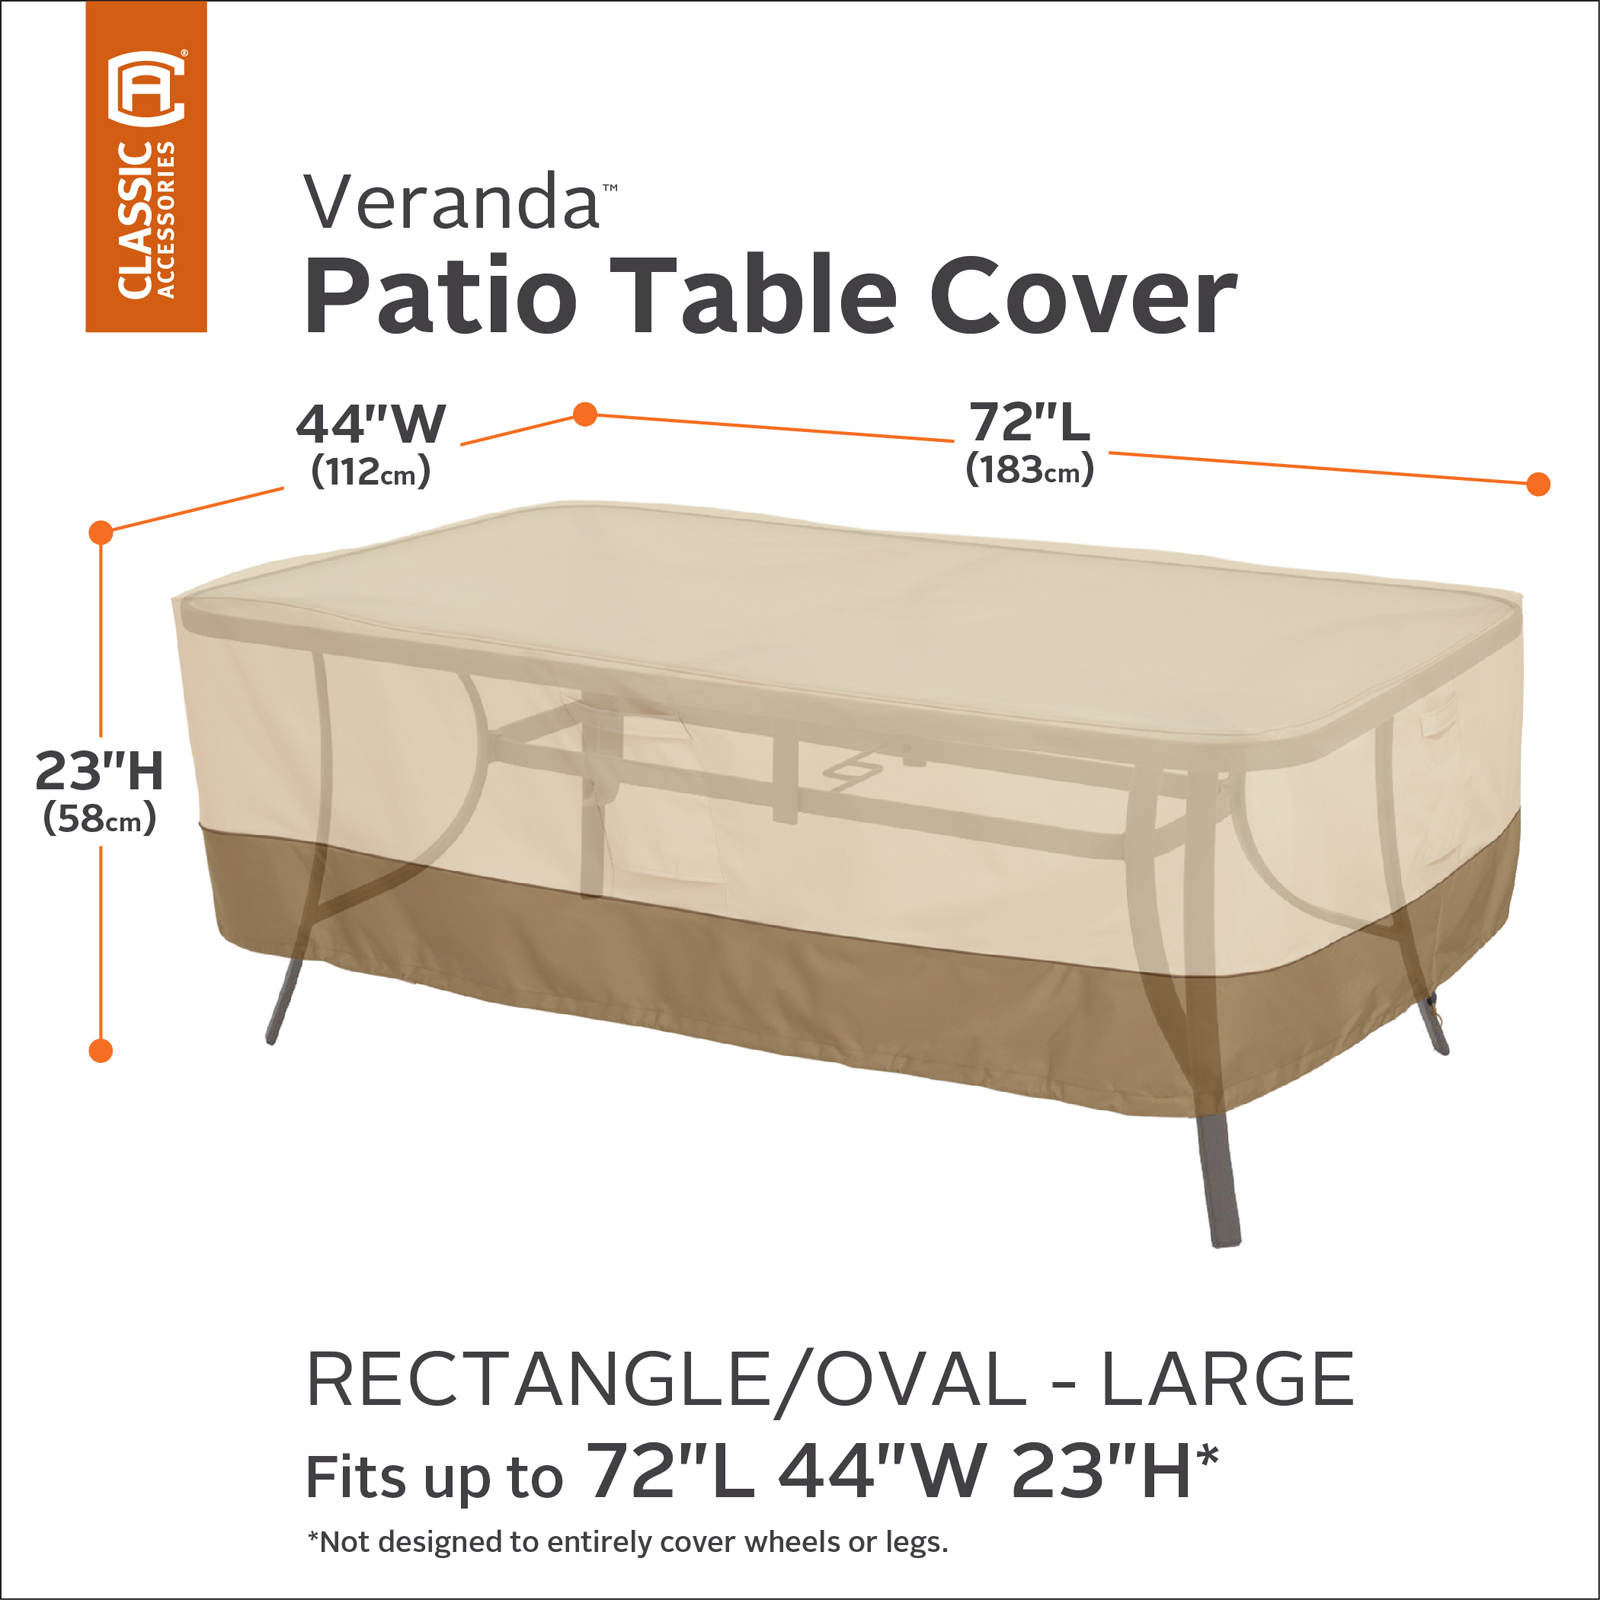 Incroyable Classic Accessories Veranda Rectangle Oval Patio Table Cover